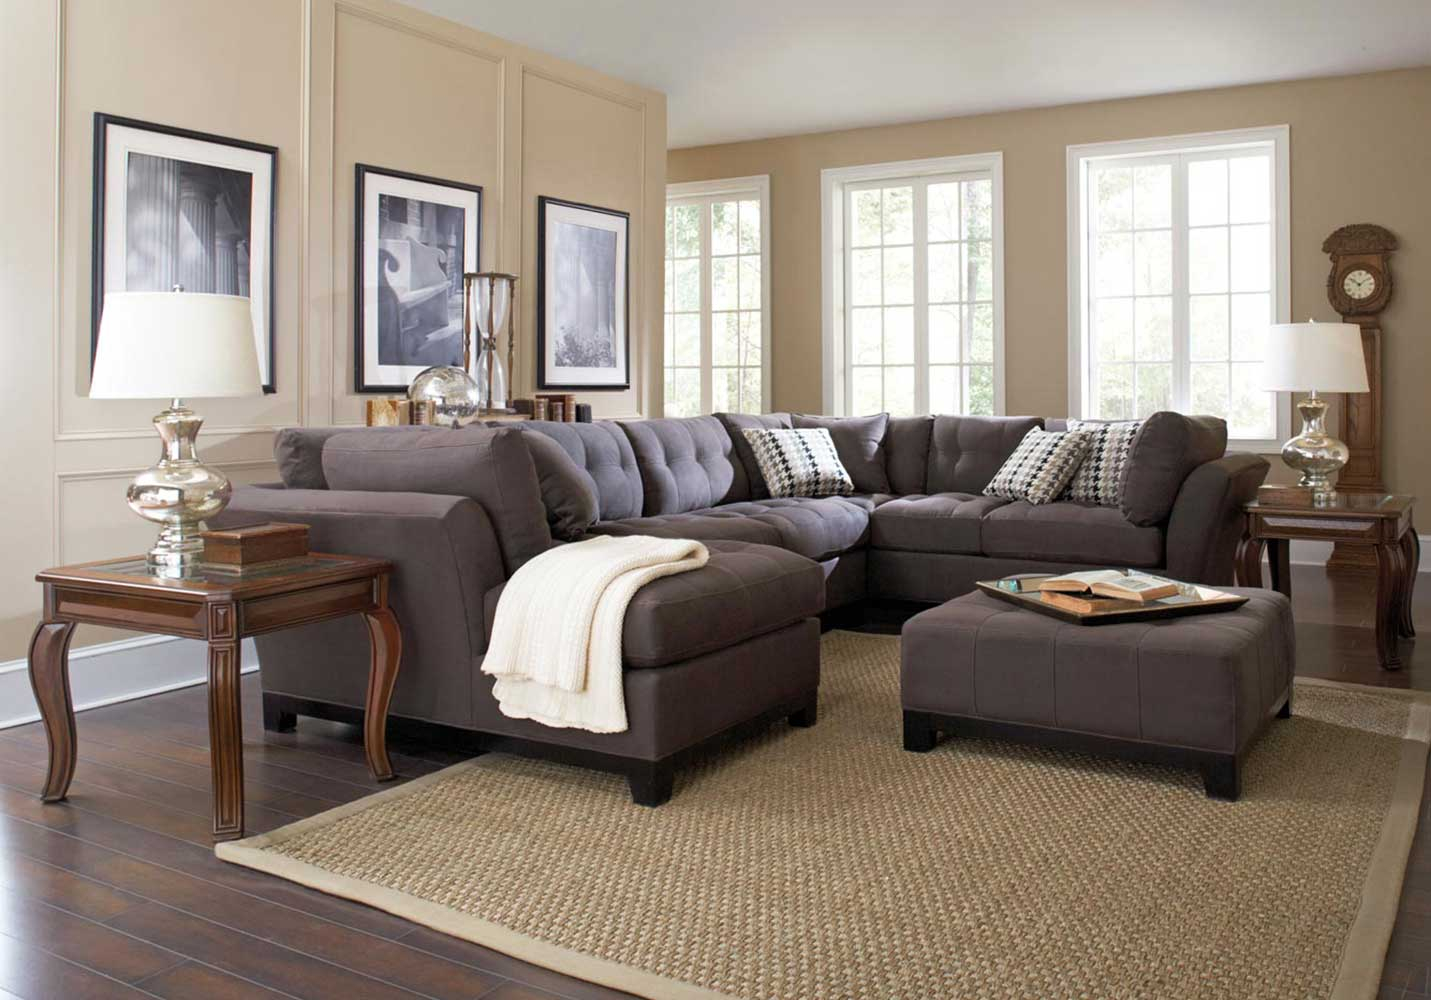 Fancy Ethan Allen pertaining to Set Ethan Allen Living Room